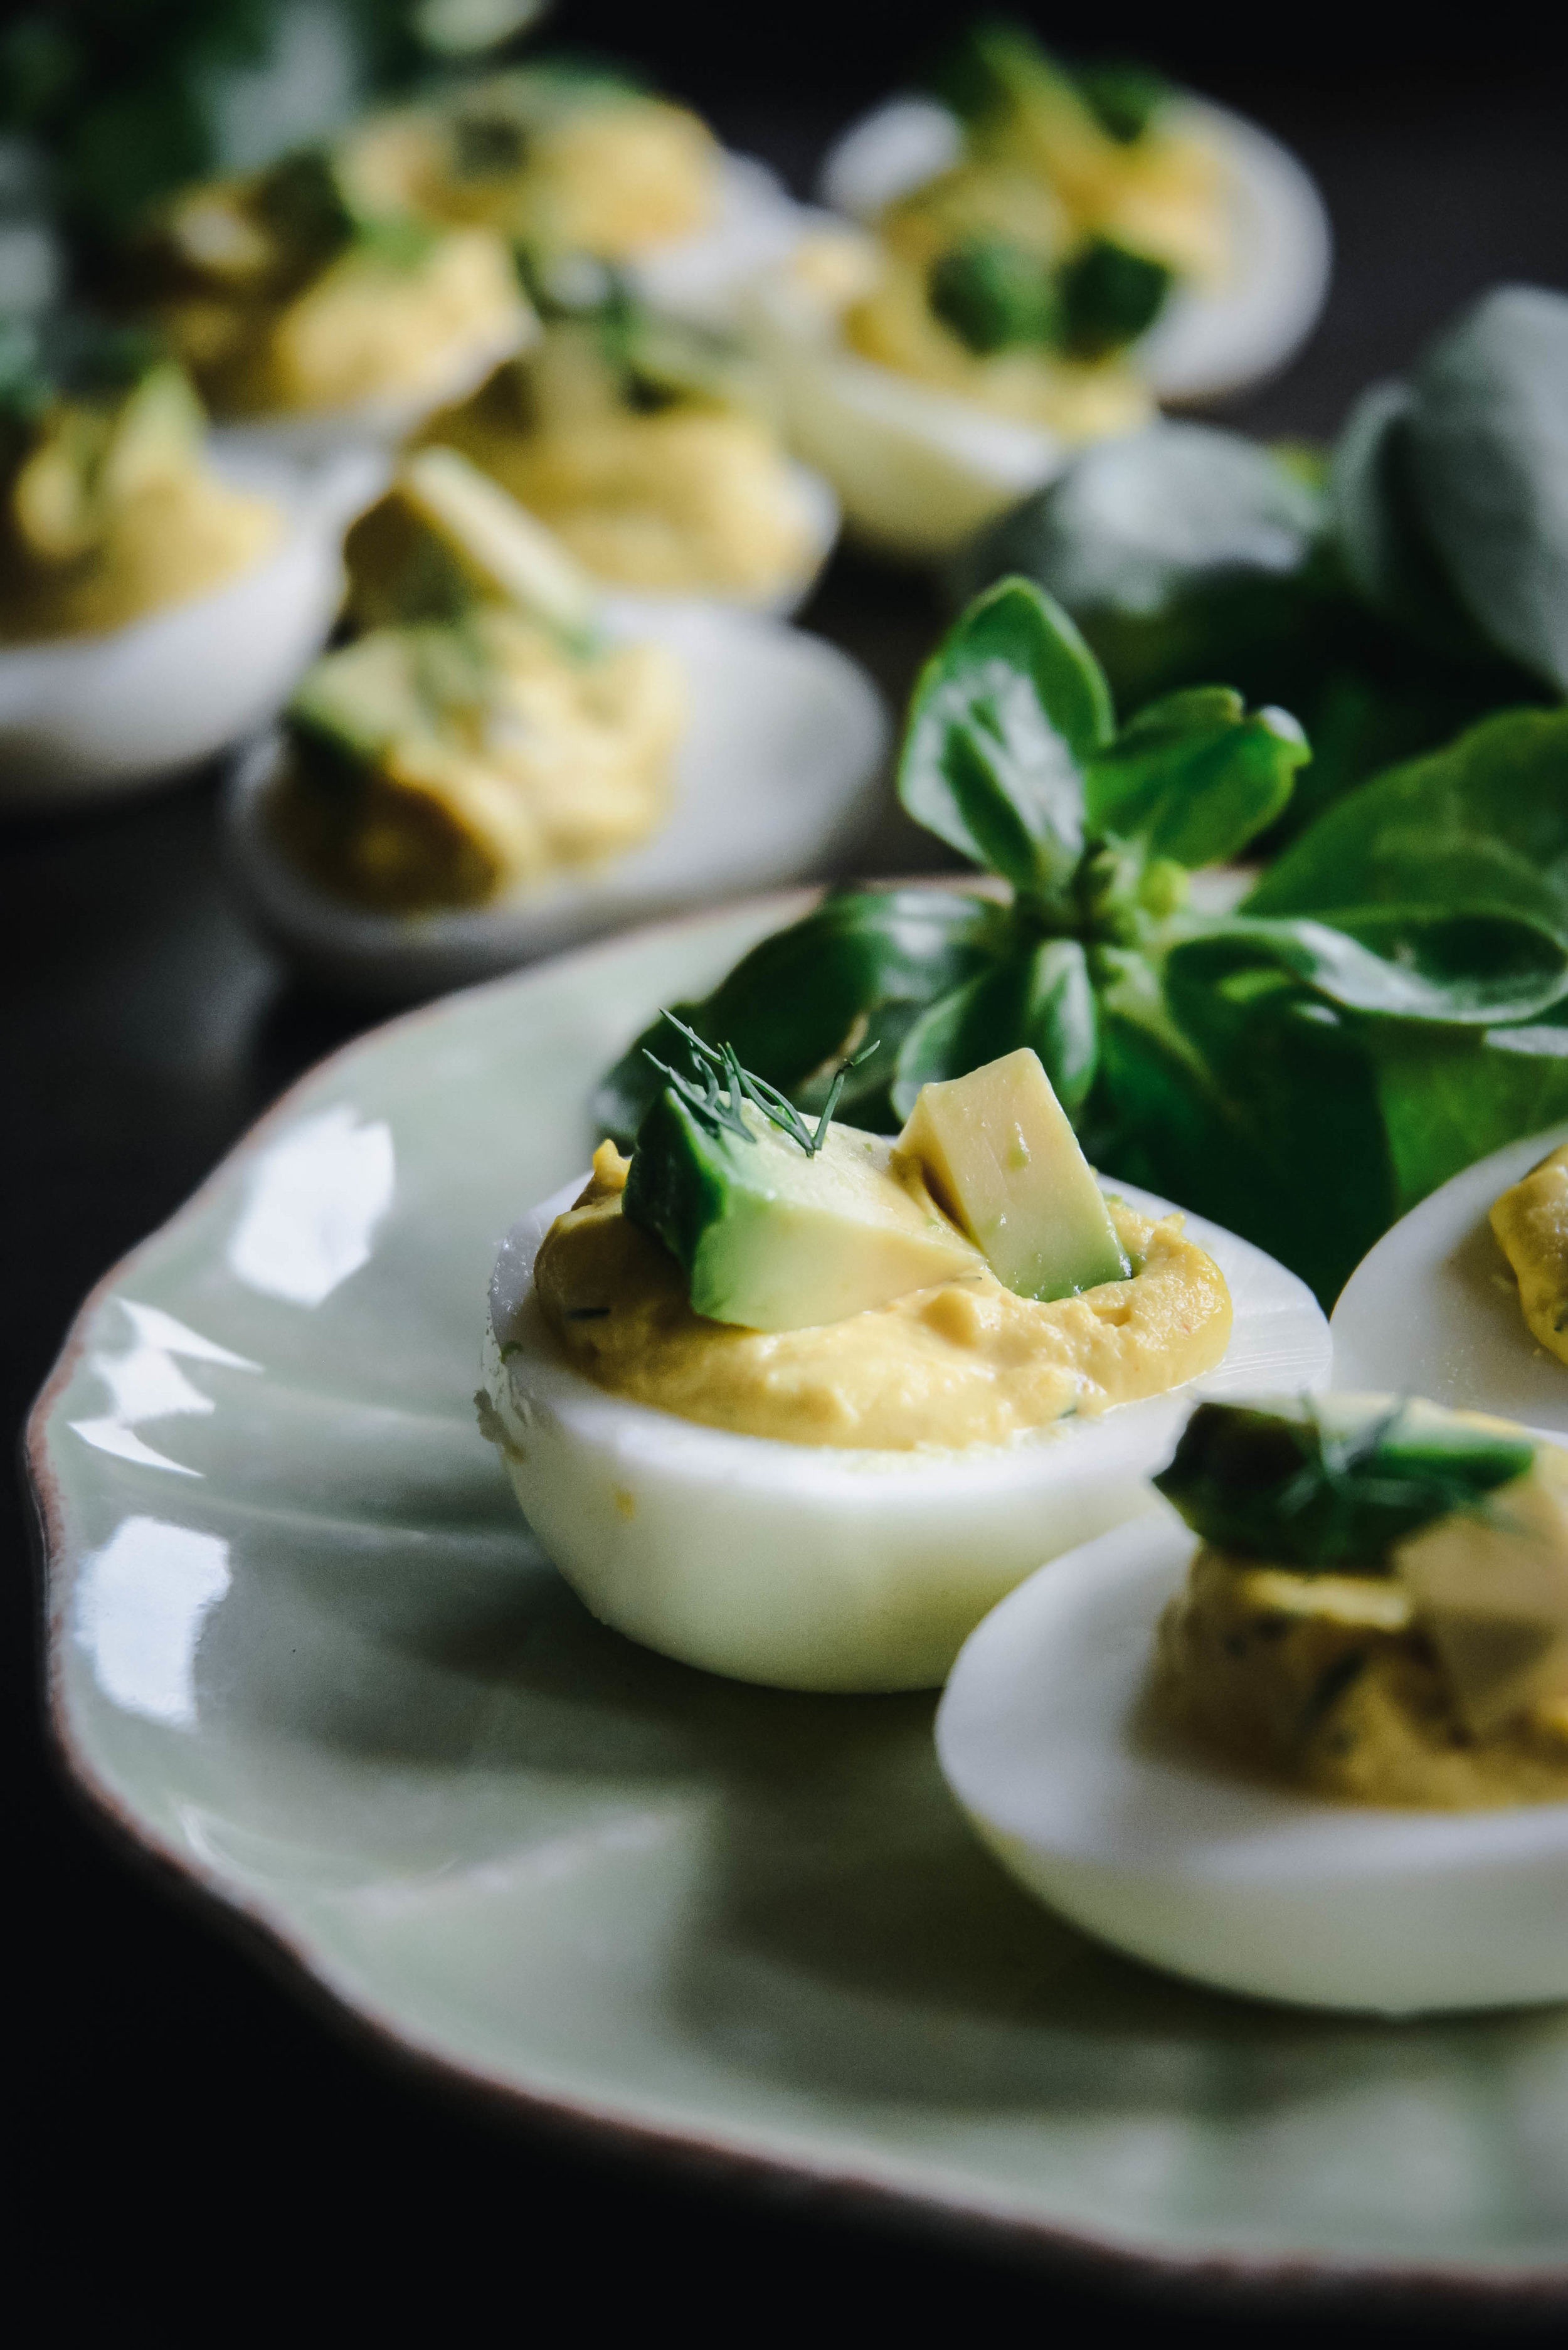 Deviled eggs on plate with avocado